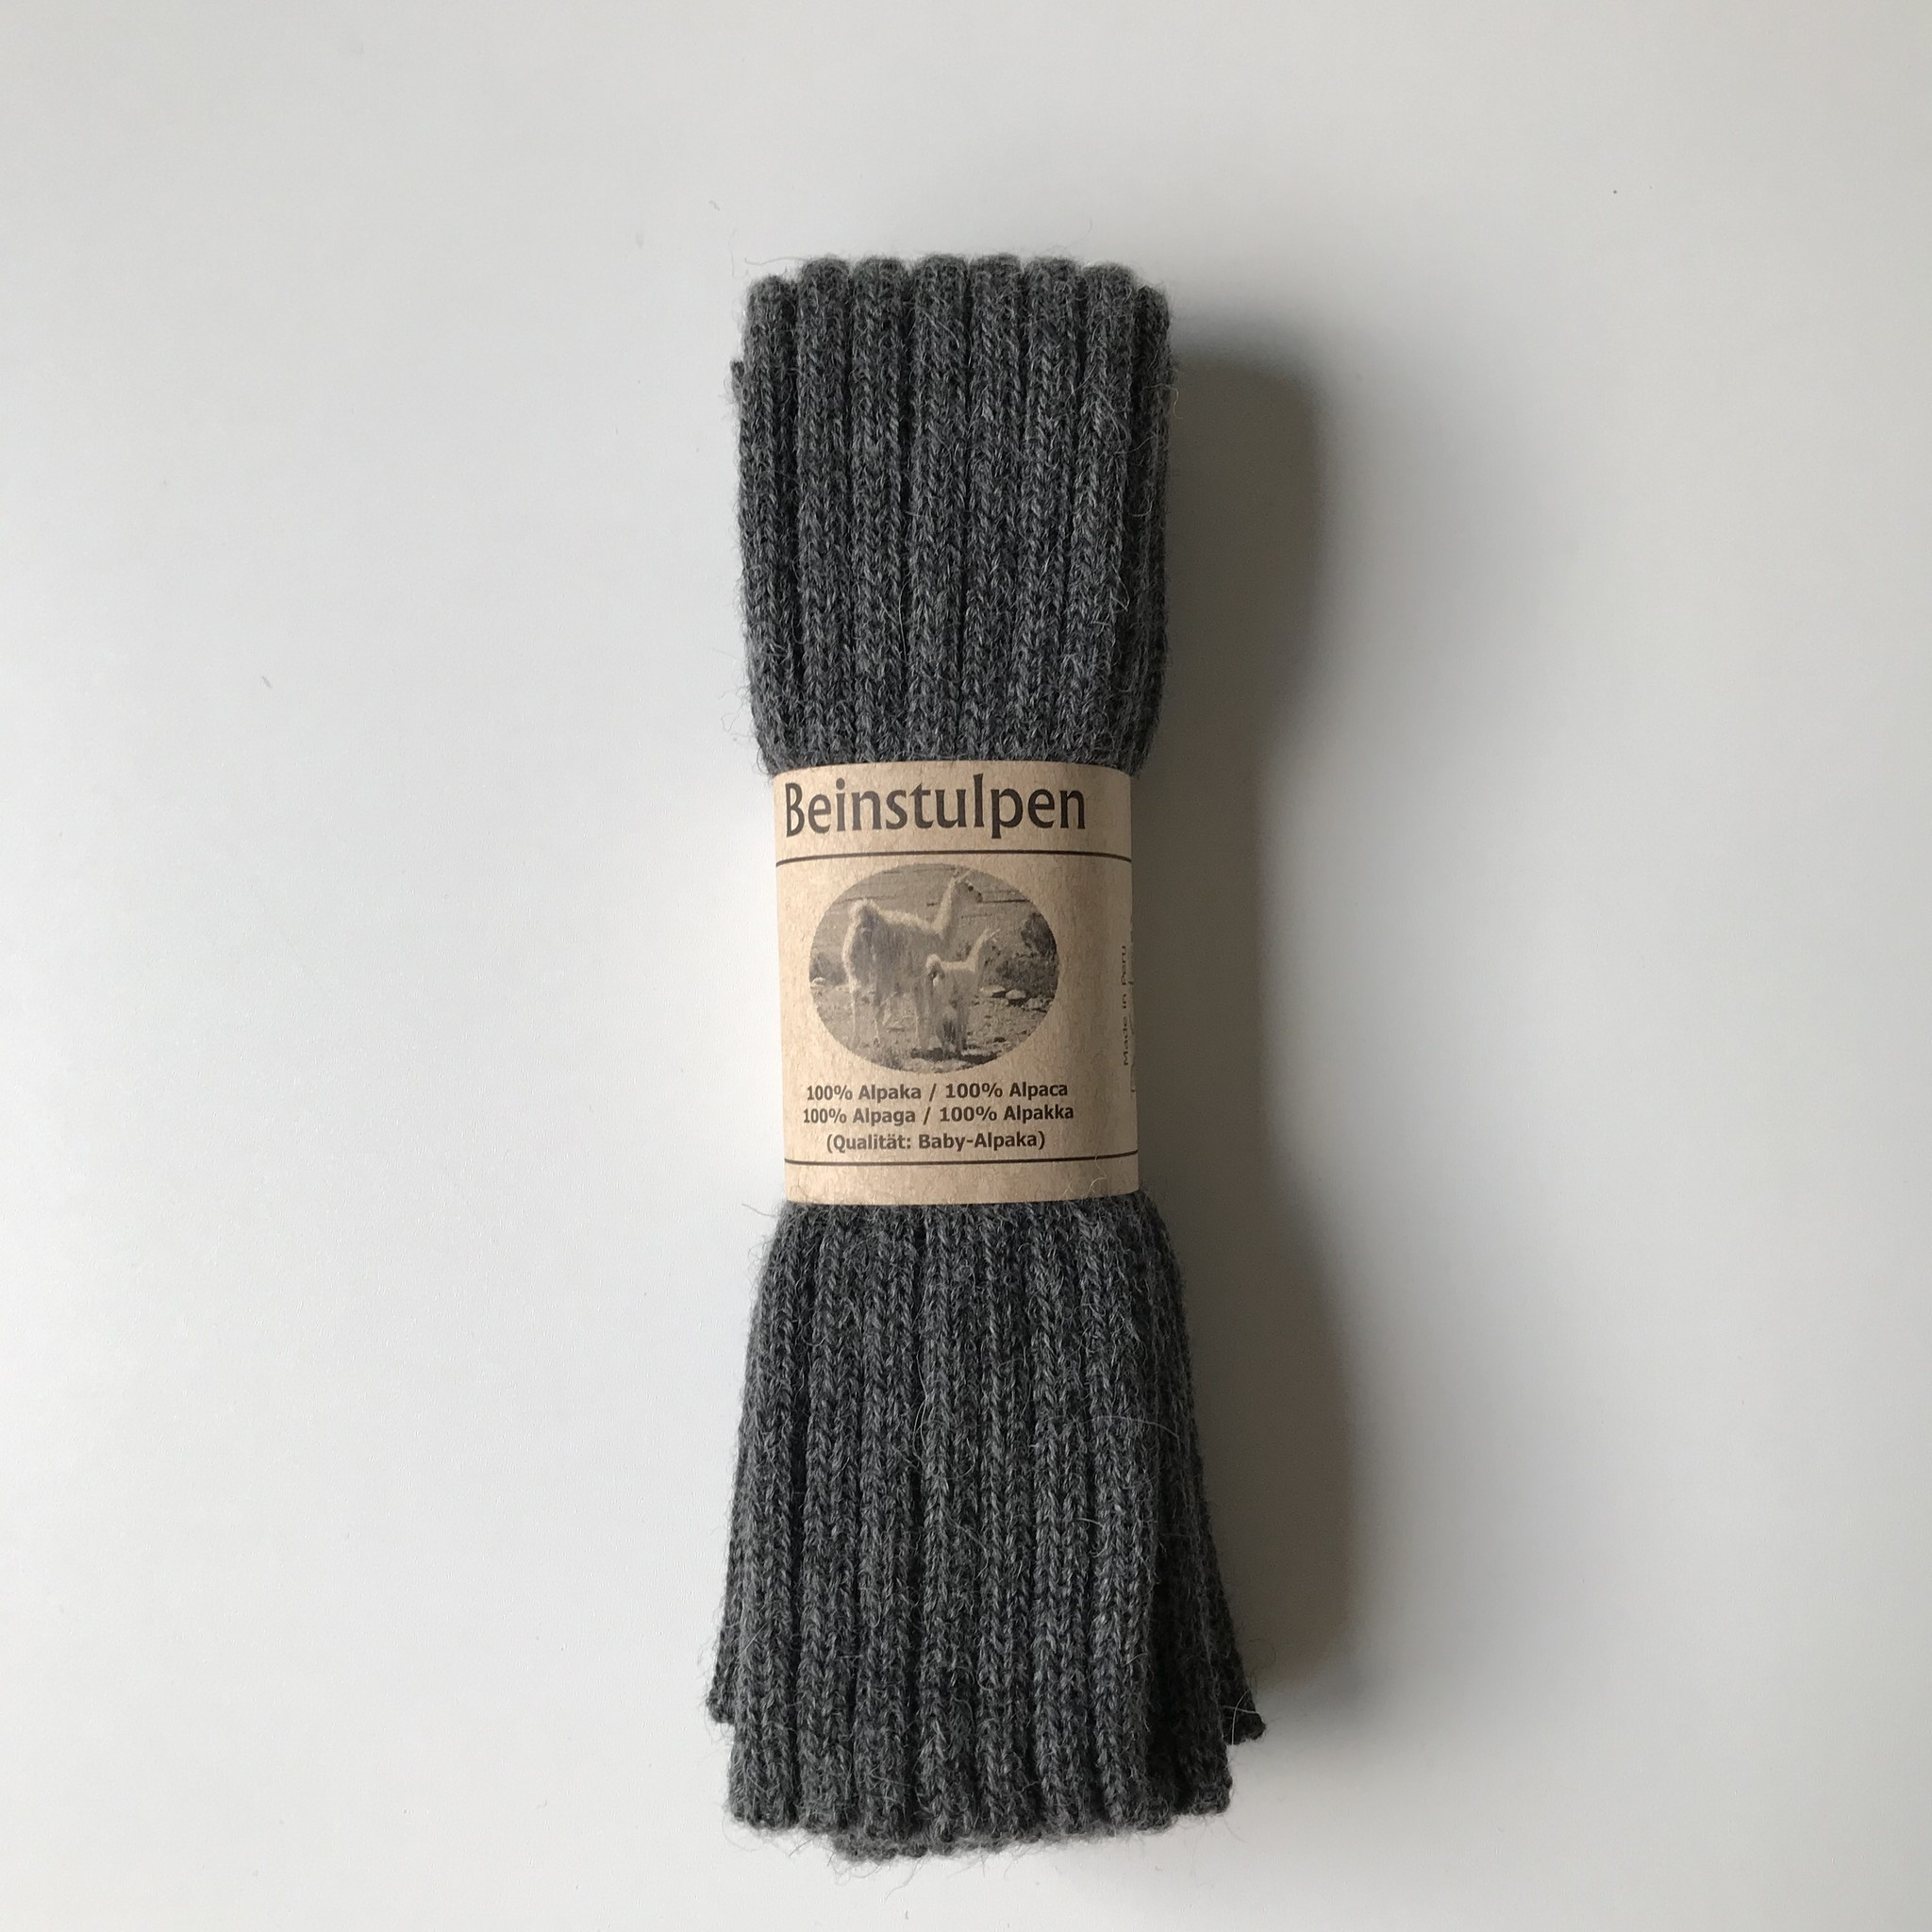 Baby Alpaca by De Colores woolen legwarmers adult - knitted in 100% baby alpaca - rib - dark grey